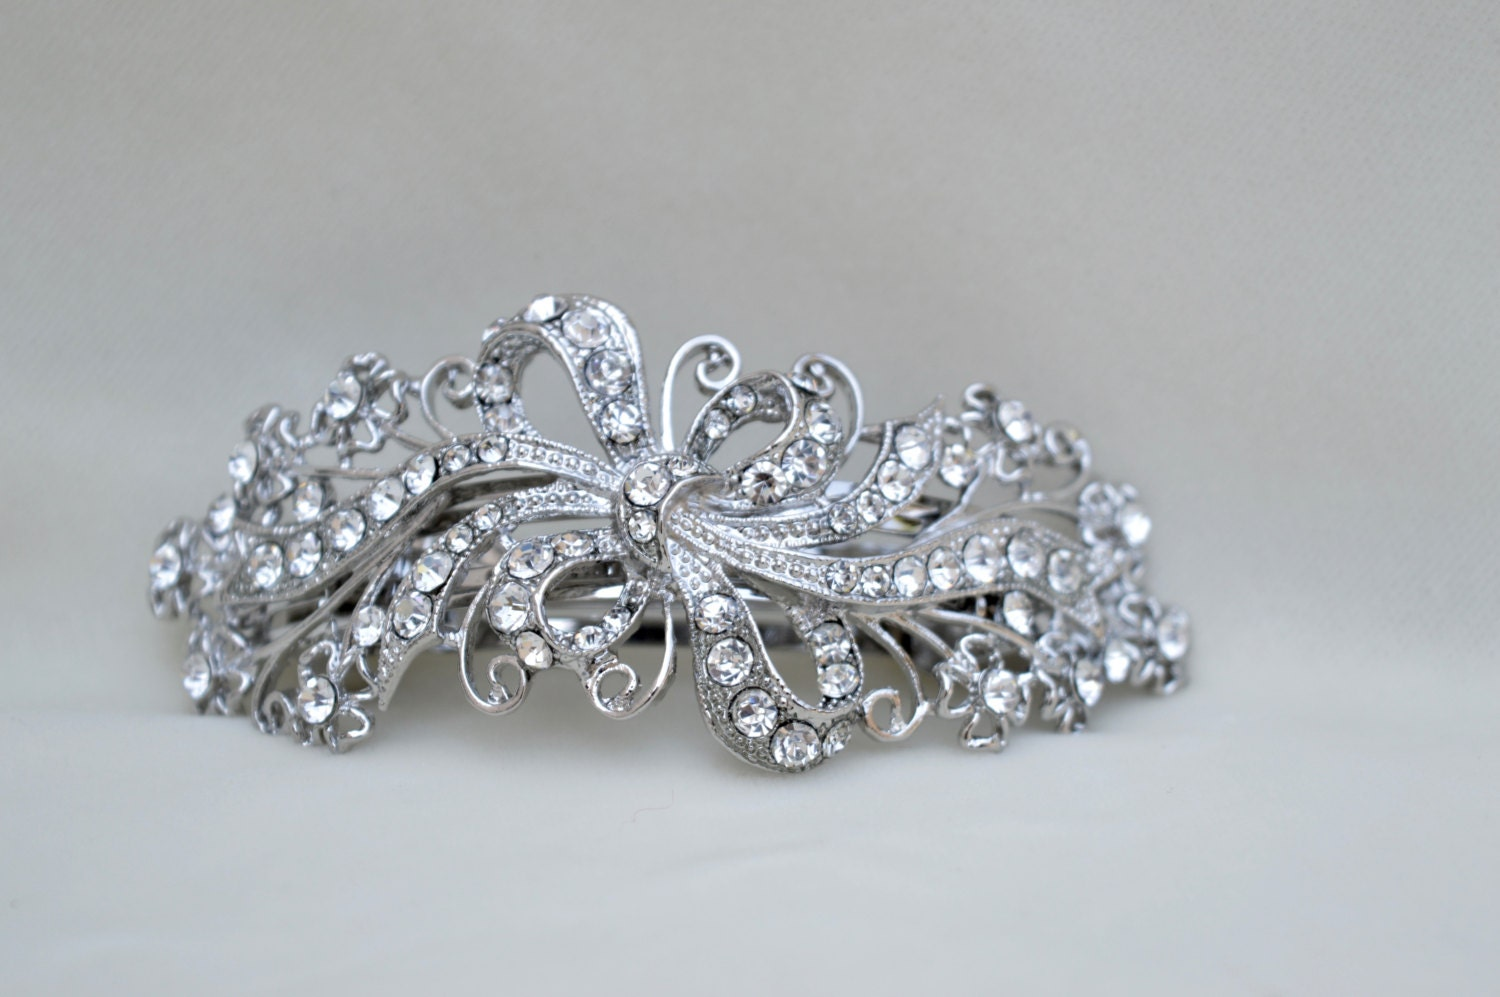 Women Girls' Pearl Rhinestone Hair Clip, Suit for Wearing in Yeshan Rhinestone and Crystal Alloy Jaw Hair Clips, Retro Butterfly Mini Hair Claw Clip Hair Accessories For Women Girls,Pack of 6. by Yeshan. $ $ 10 90 ($/Count) FREE Shipping on eligible orders. out of 5 stars